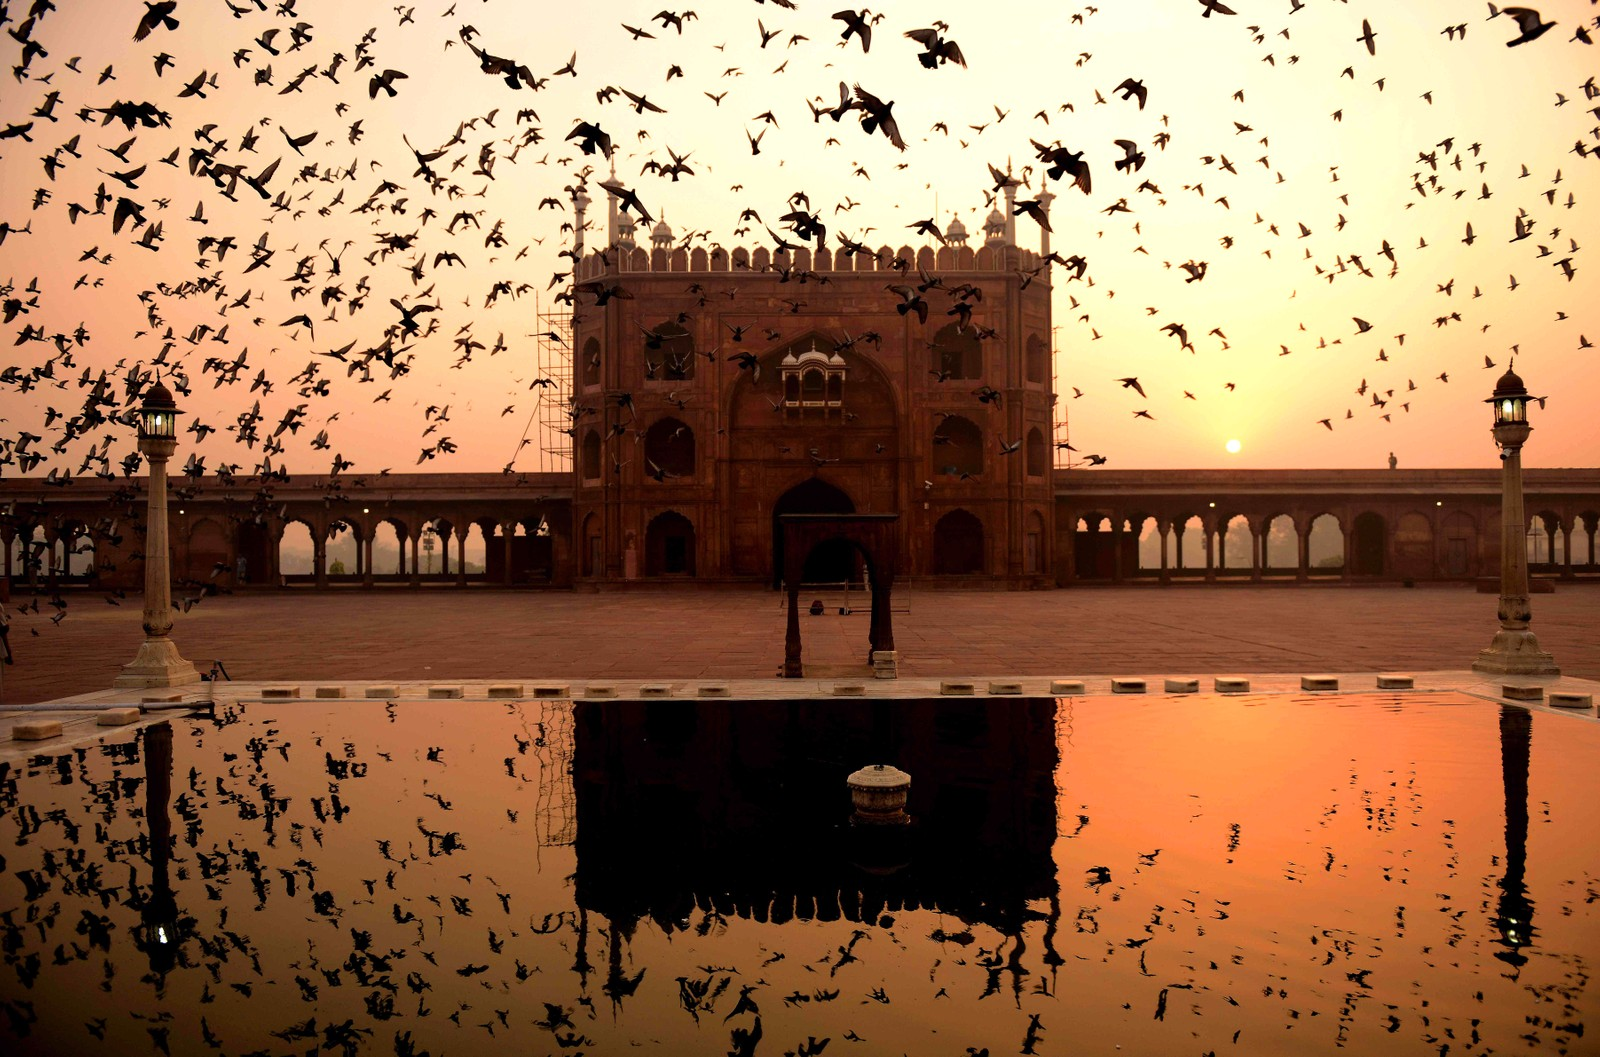 Fugler flyr over Jama Masjid i New Delhi i India.